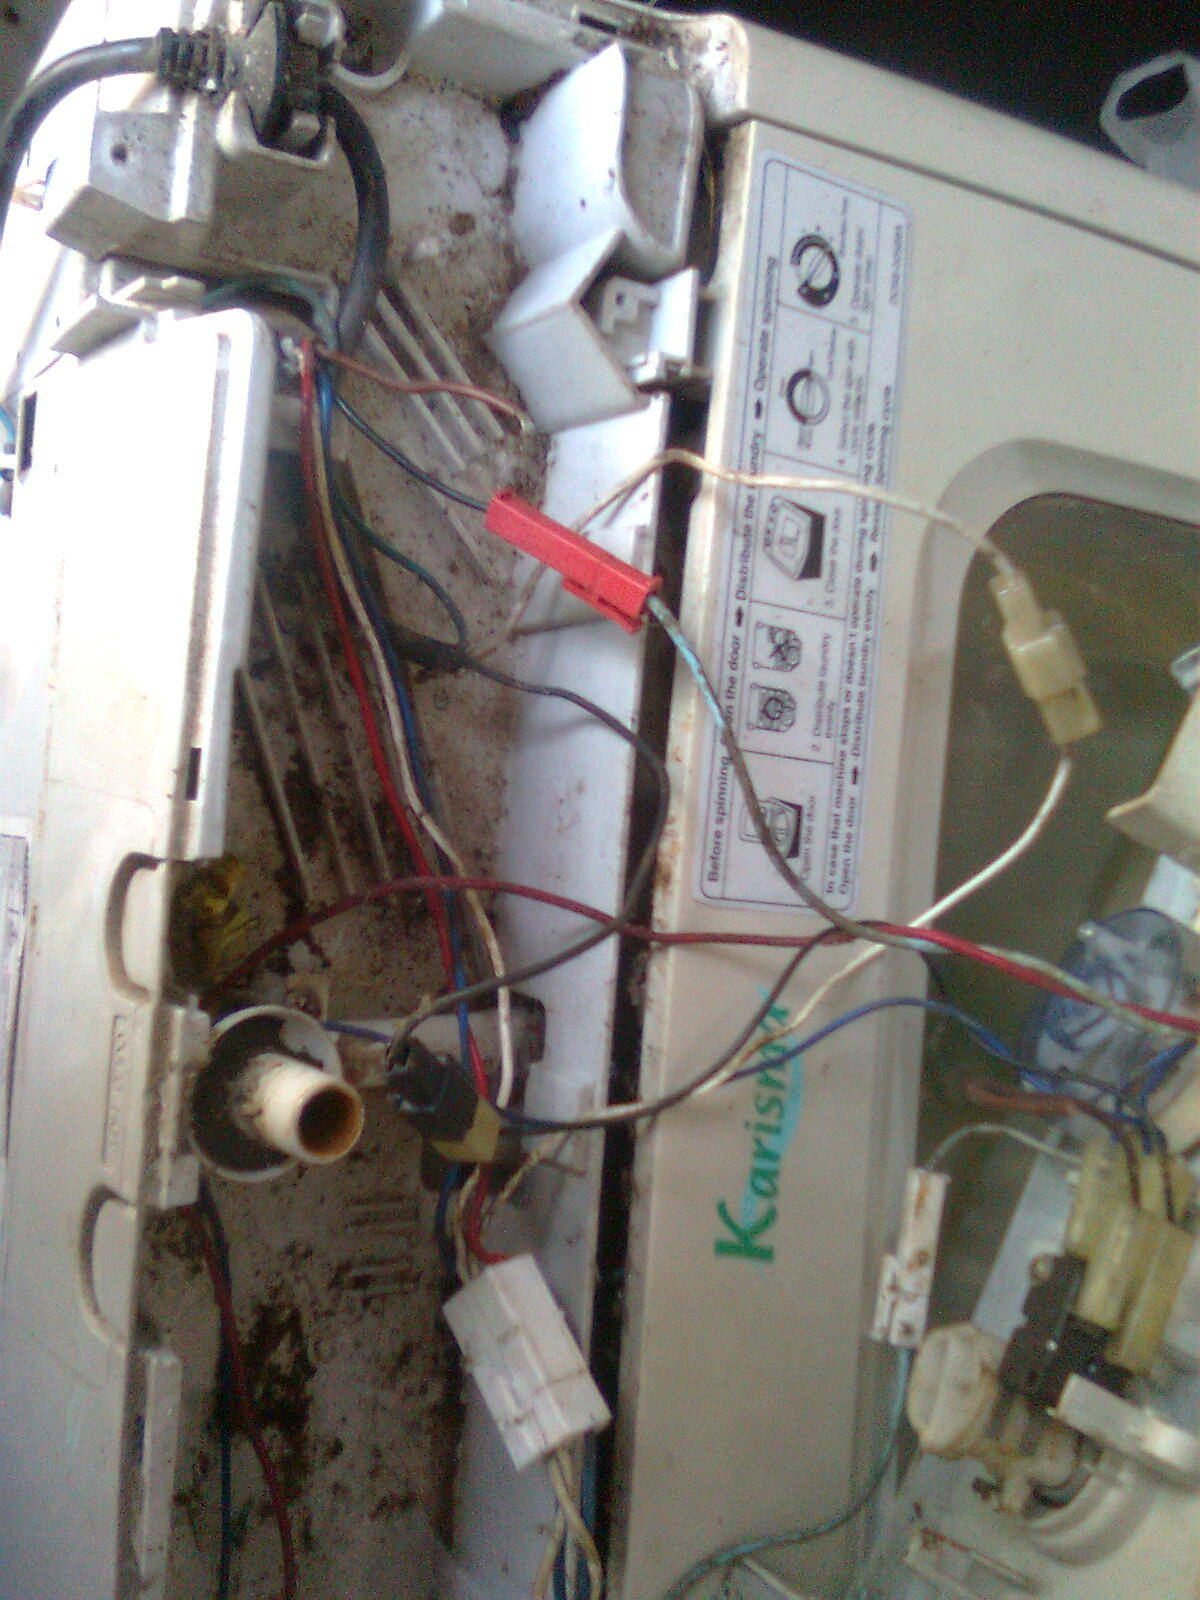 Wiring Diagram Of Ifb Washing Machine - Wiring Diagrams Long on